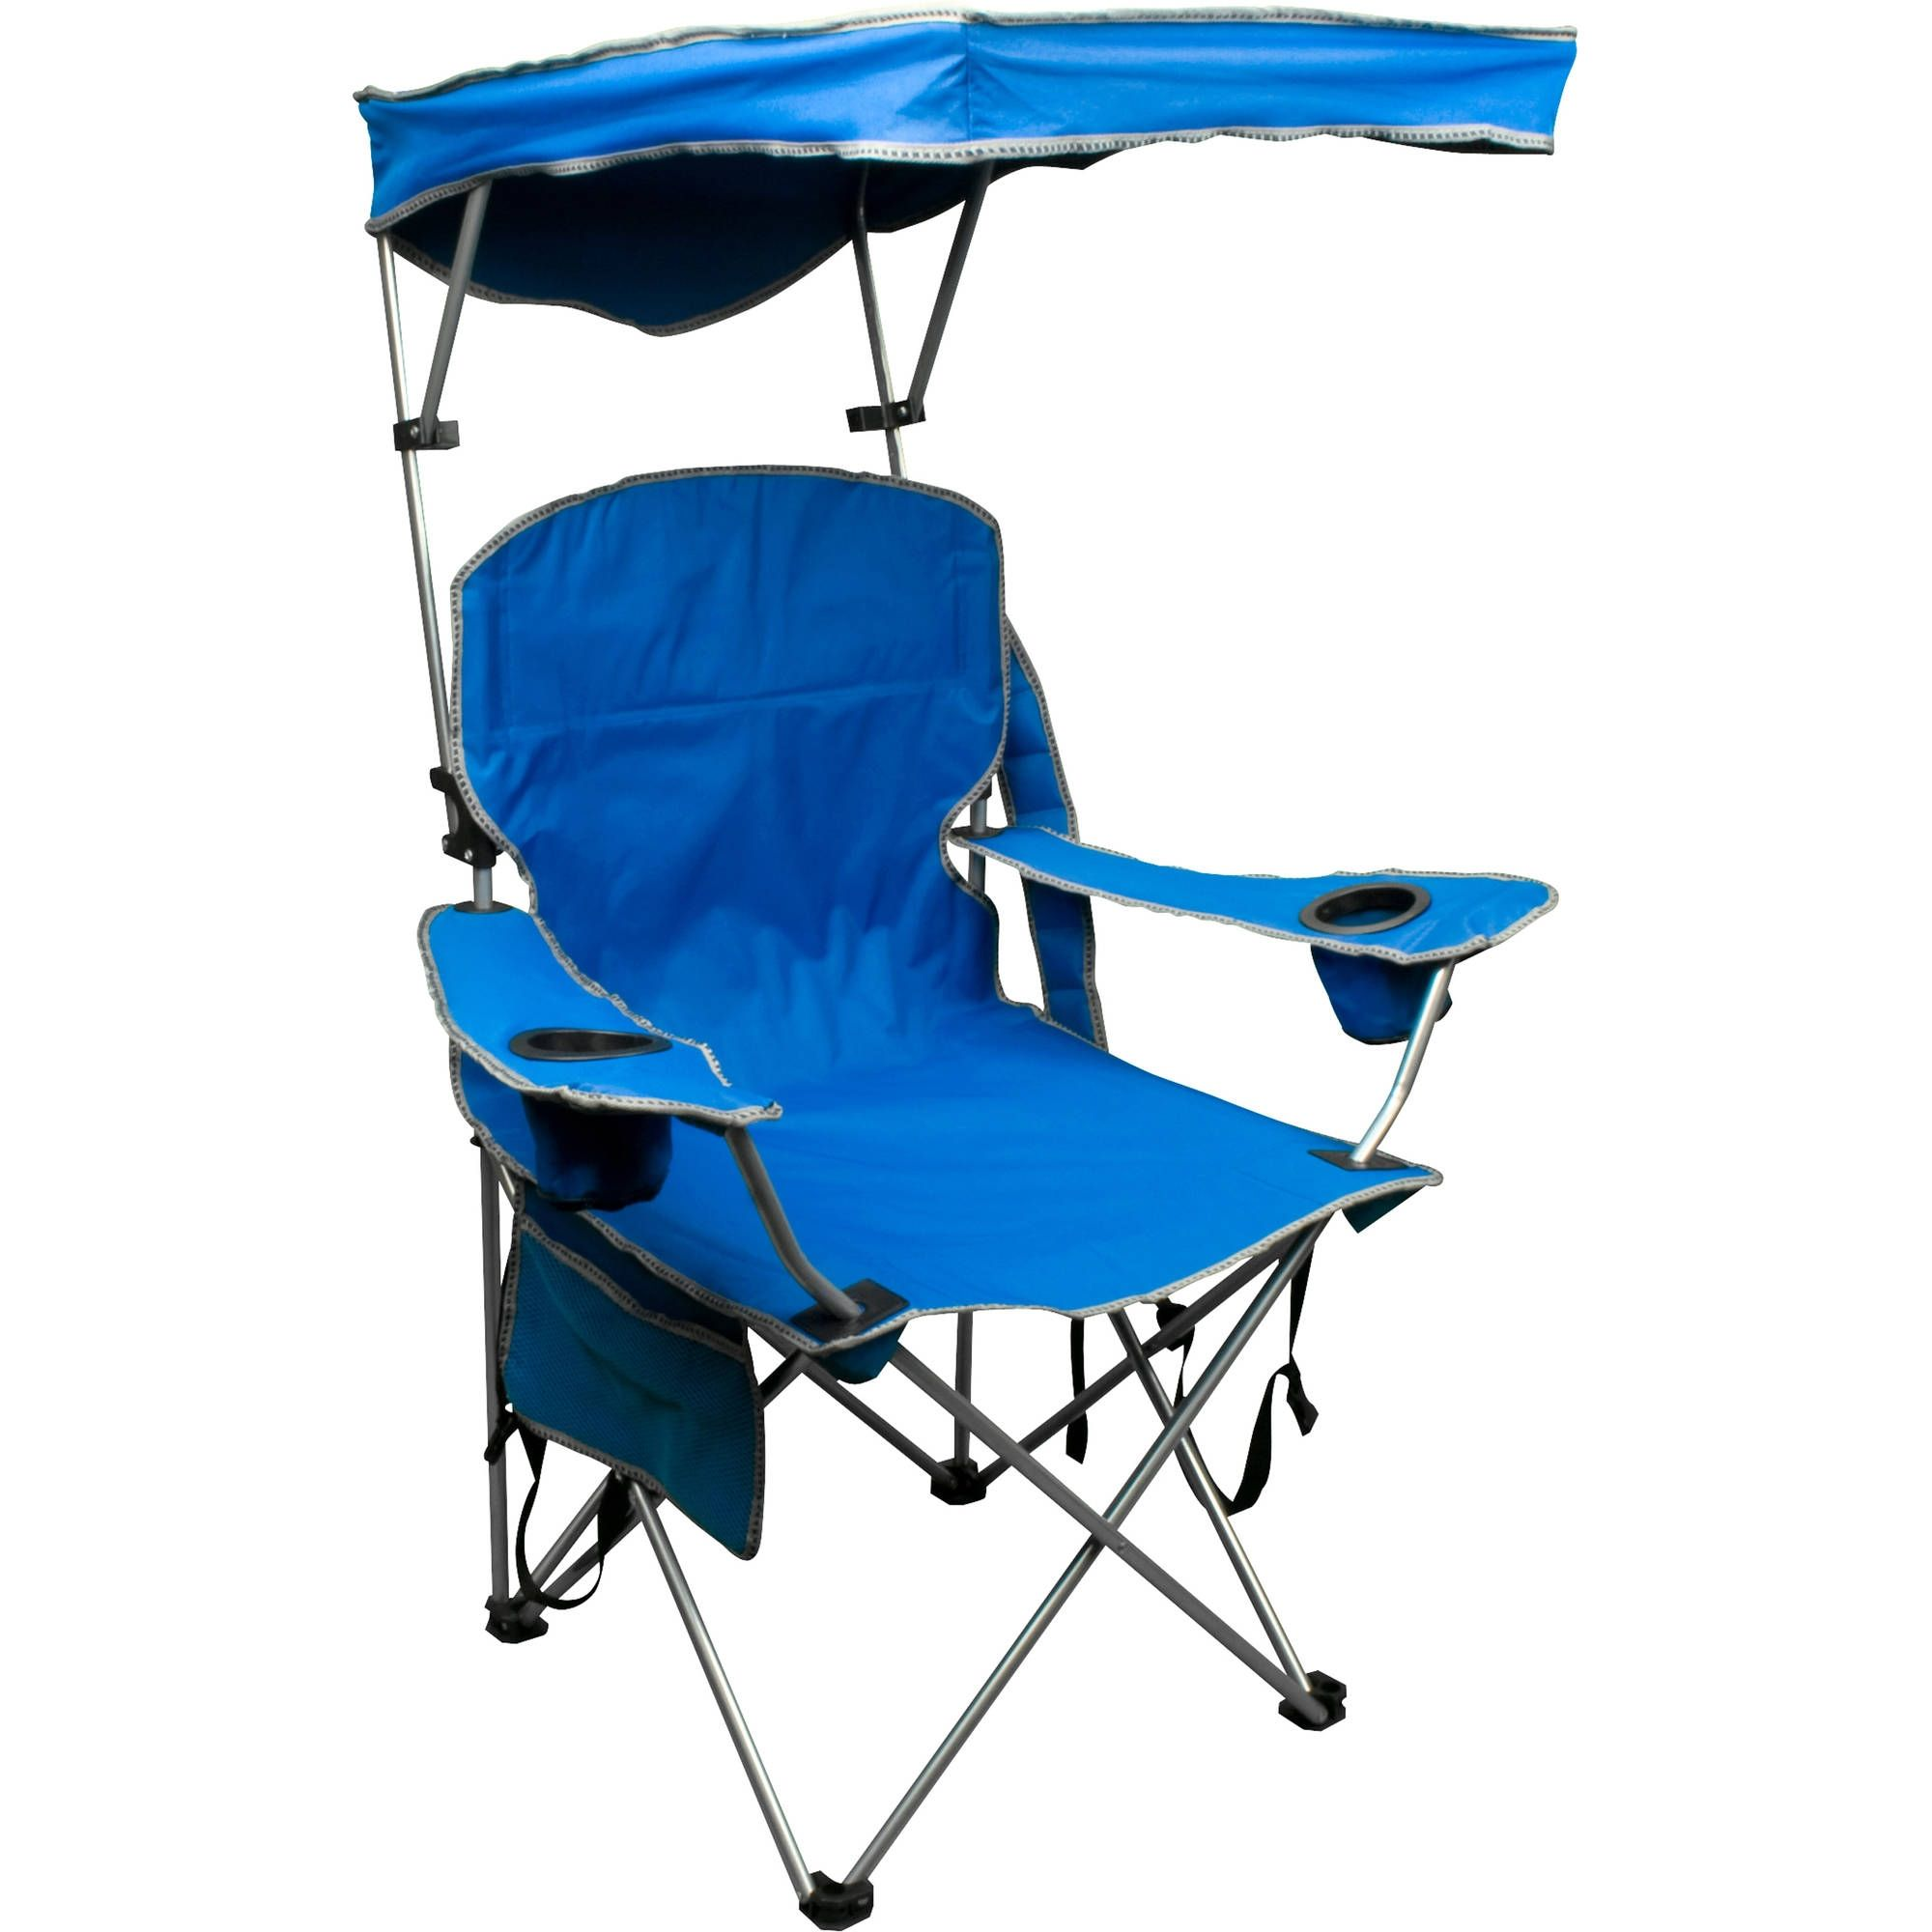 Folding Camp Chair With Canopy Shade Cover